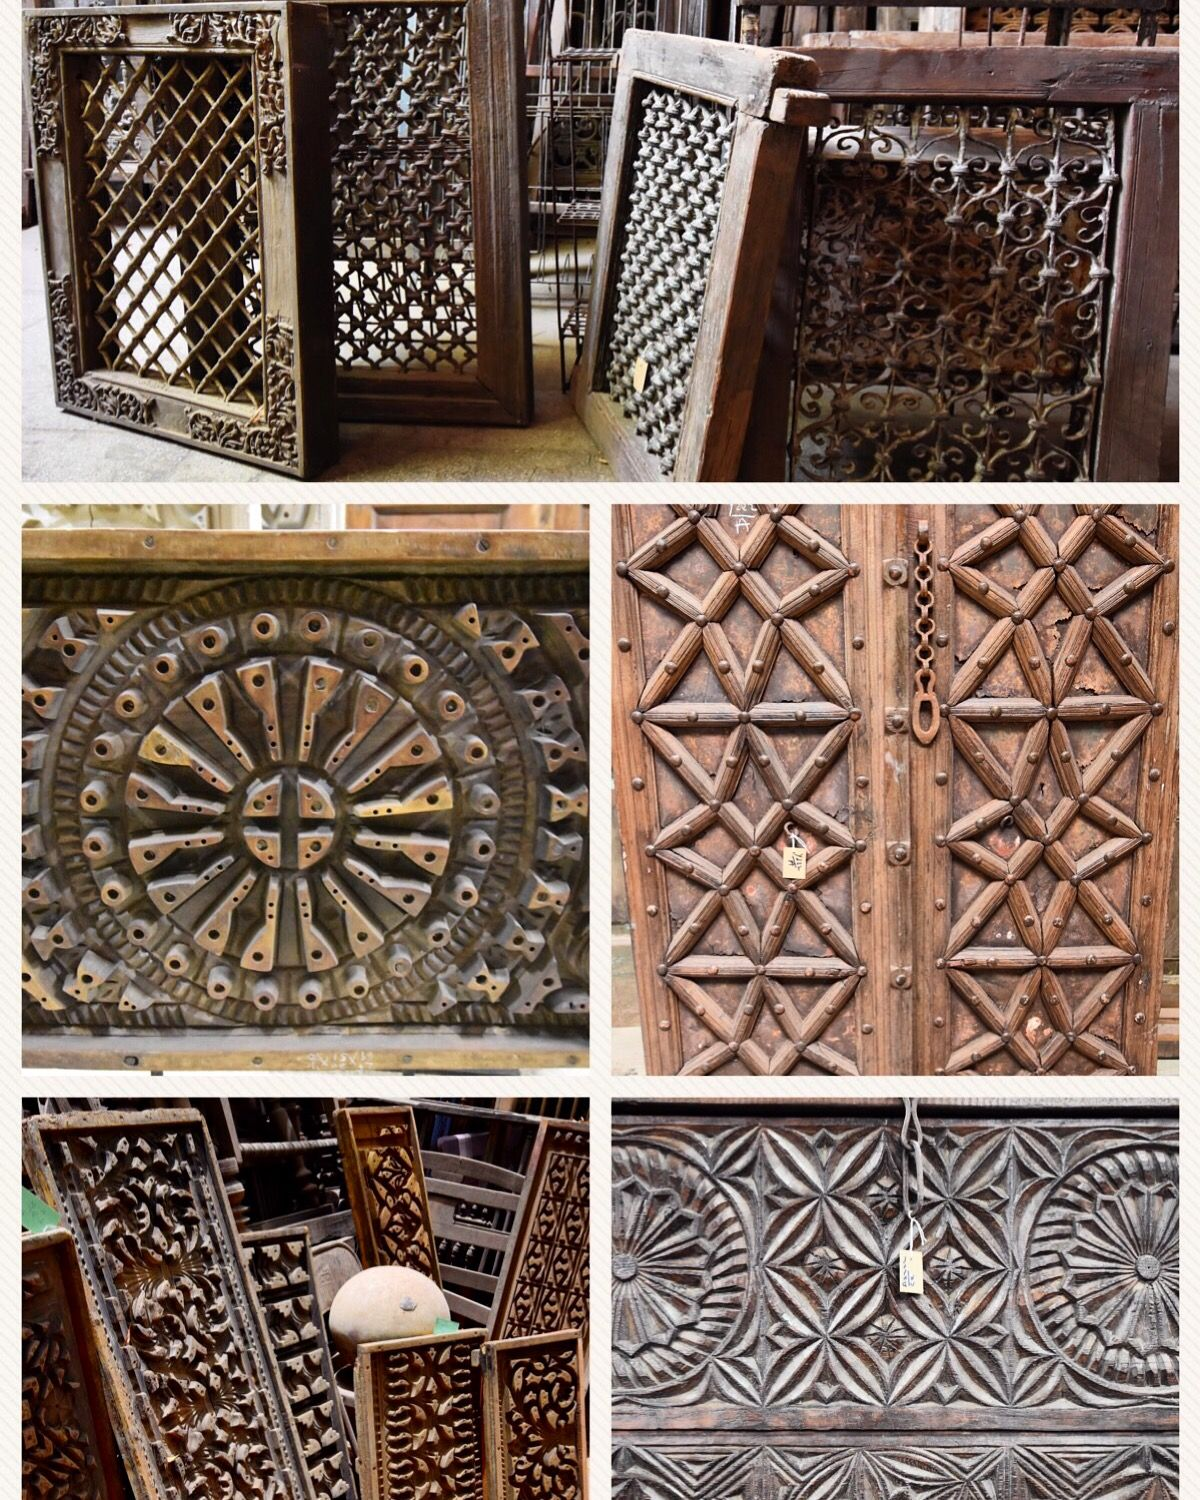 Old wood antique jali windows vintage wooden plaster molds old shutter doors love these wonderful architectural salvage pieces